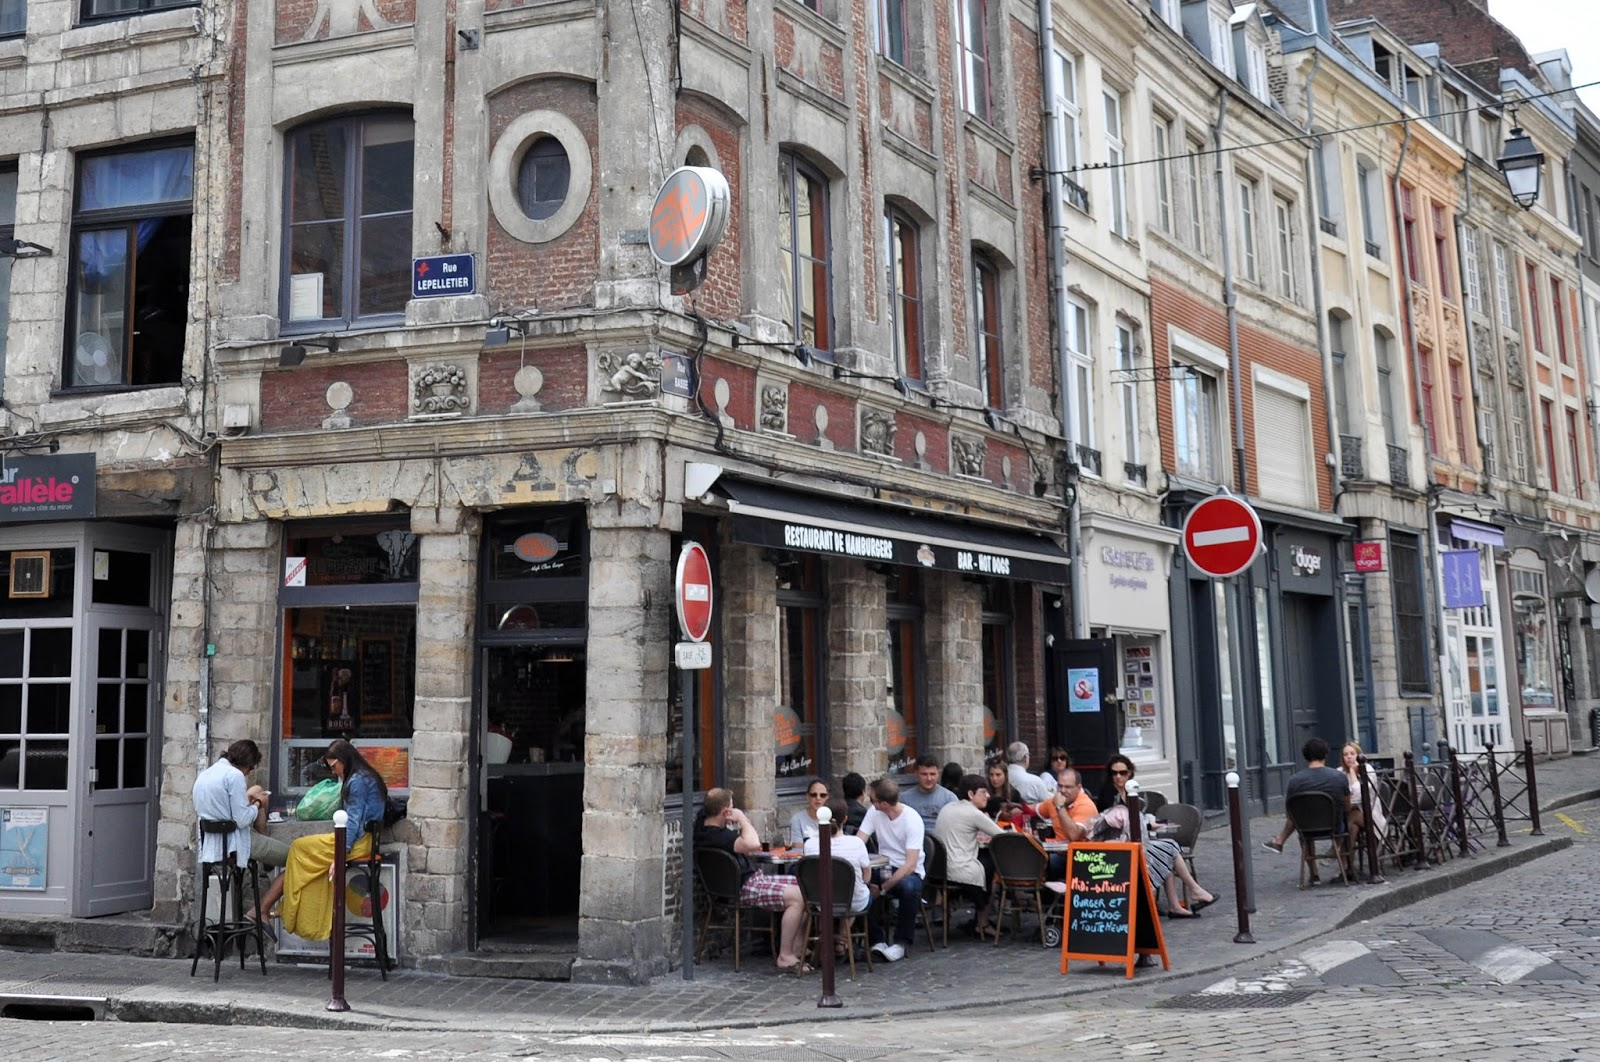 People having brunch, Lille, France